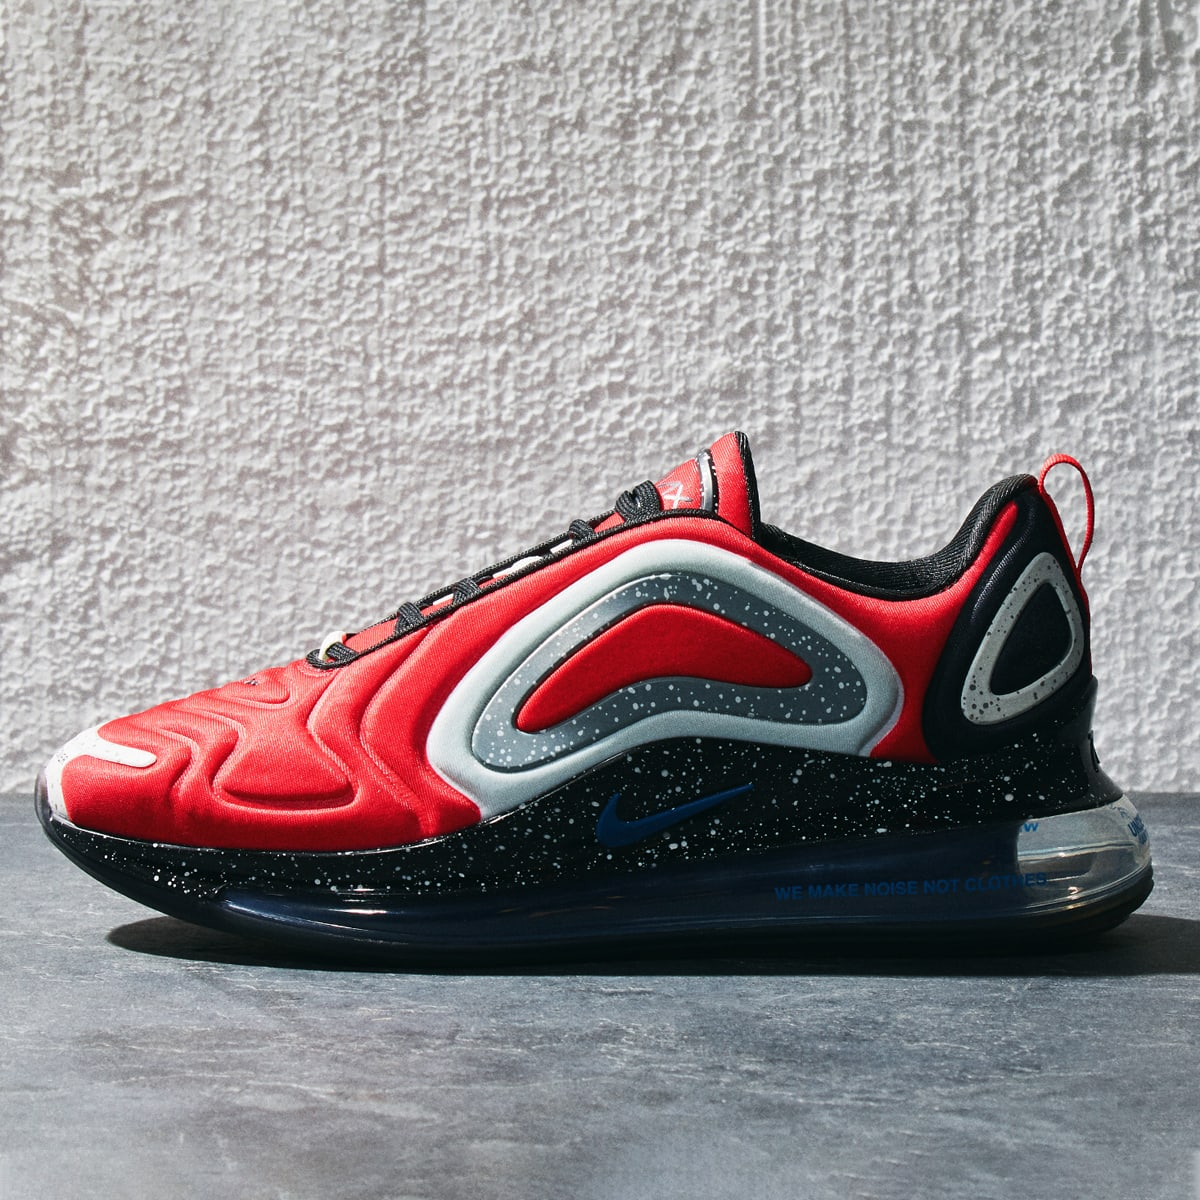 Nike X Undercover Air Max 720 University Red Blue Jay